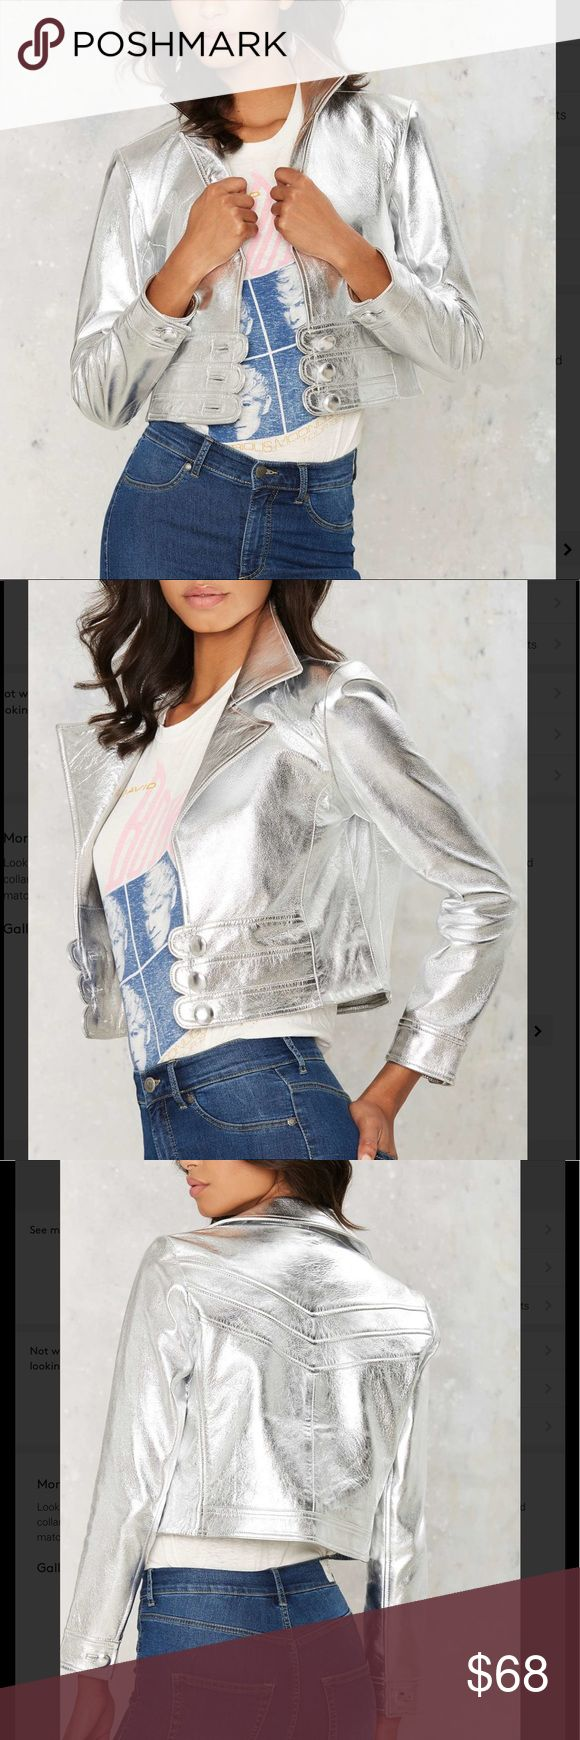 Rack🔟🆕💗 jerry metallic jacket Look fresh out of the Factory. The Jerry Jacket is made in metallic silver leather and features a notched collar, leather panels with button closures at front, and button at sleeves. Fully lined. Pair it with the matching Jerry Skirt for full effect or wear it with wide leg pants for an equally amazing look. By Nasty Gal. Leather. Runs true to size. Dry clean only. California Residents: Proposition 65. Color: metallic Nasty Gal Jackets & Coats